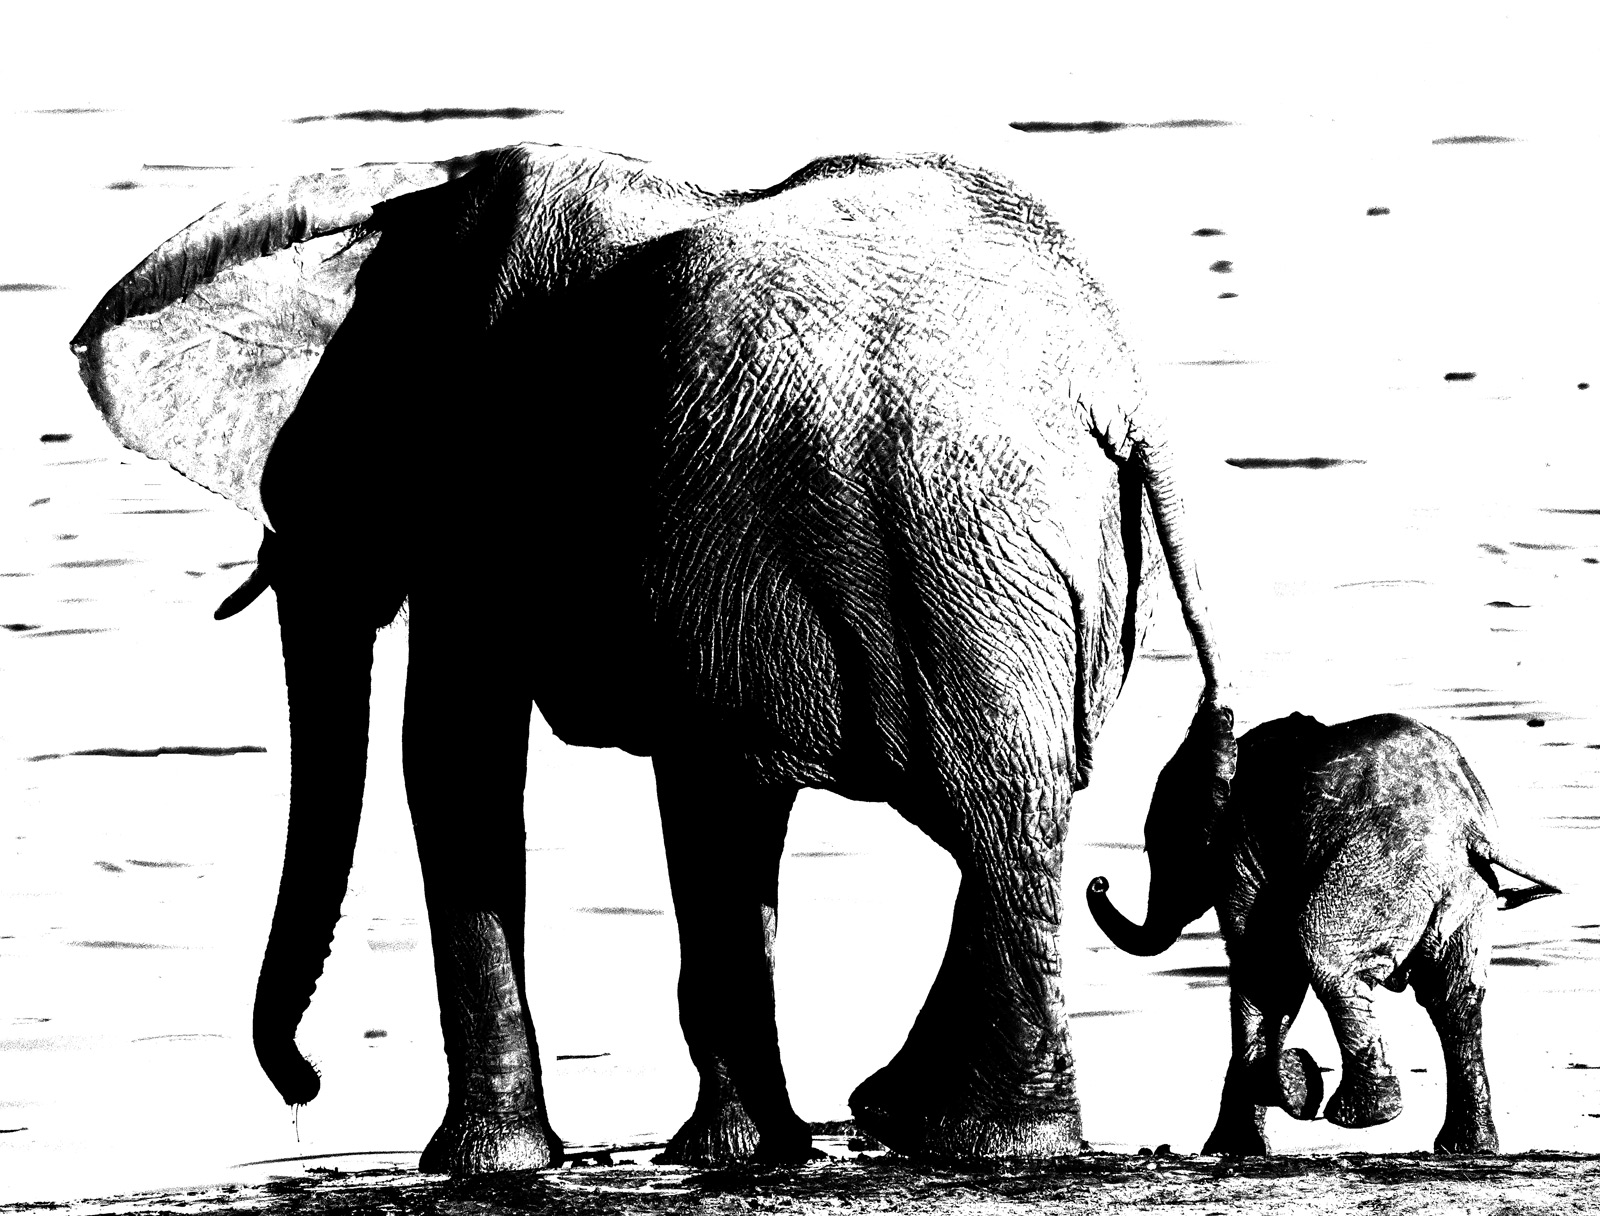 Water Hole, Hwange, Zimbabwe, Africa, adore, elephants, favorite, mother, son, watering hole, youngster, excited, pen and ink, jet black, pure white, photo